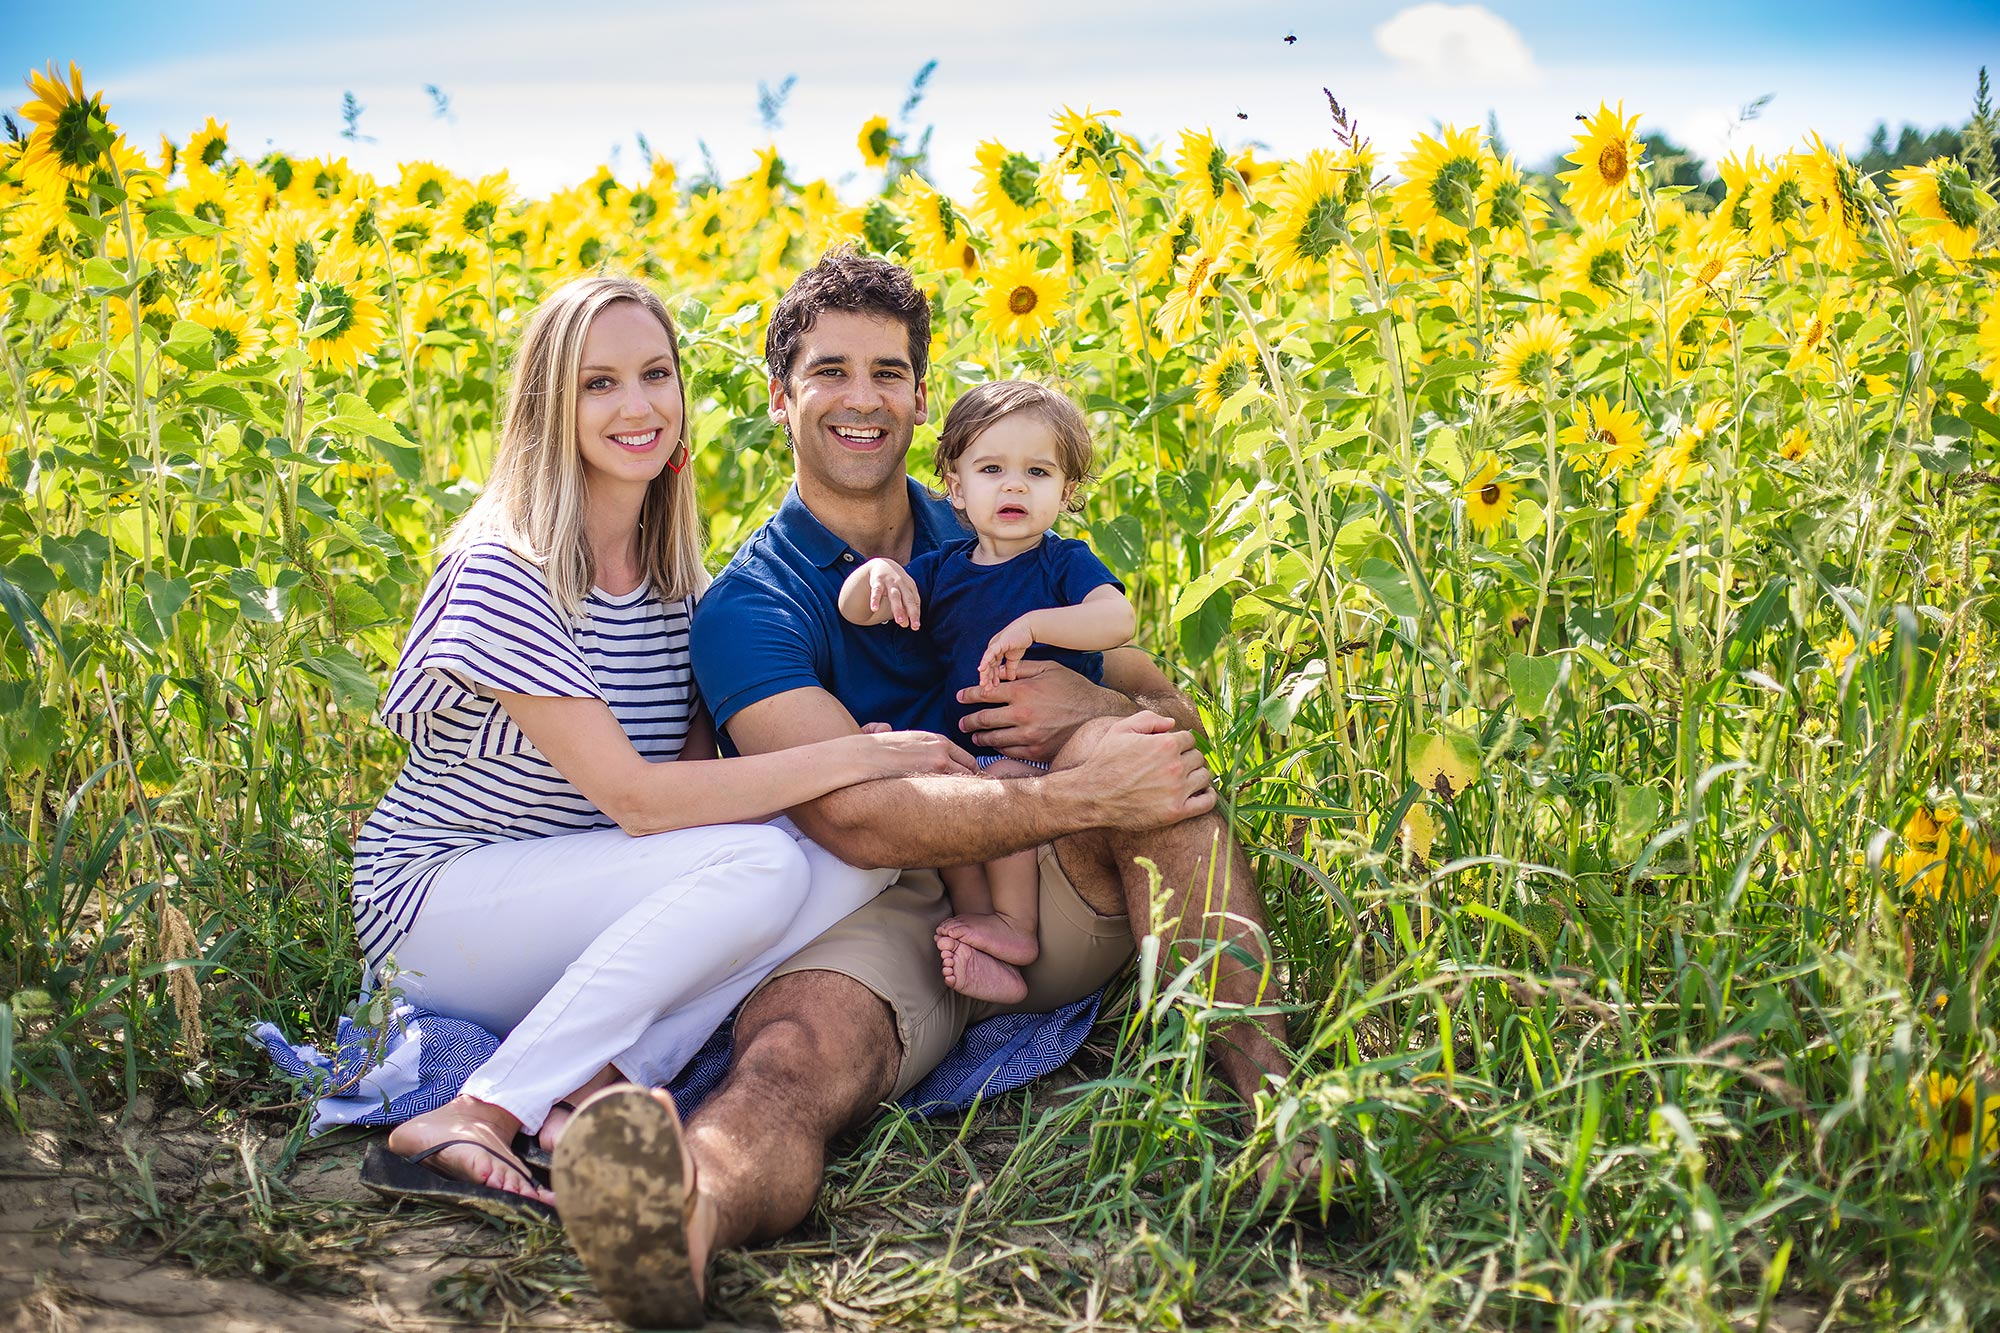 Newburyport Family Portrait Photographer | Stephen Grant Photography